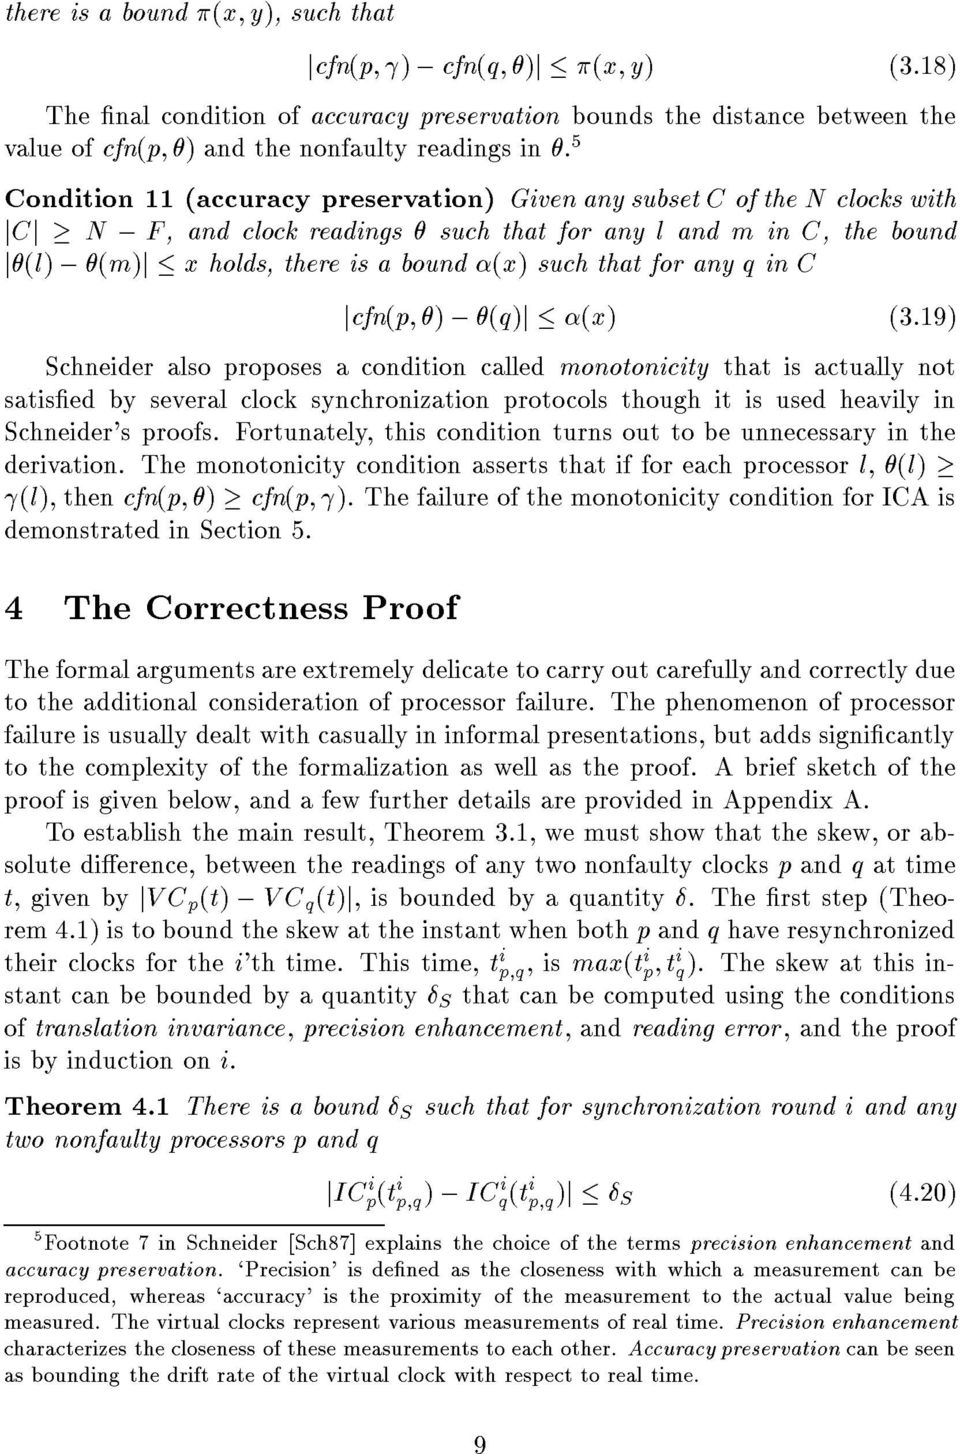 for any q in C jcfn(p; ), (q)j (x) (3:19) Schneider also proposes a condition called monotonicity that is actually not satised by several clock synchronization protocols though it is used heavily in